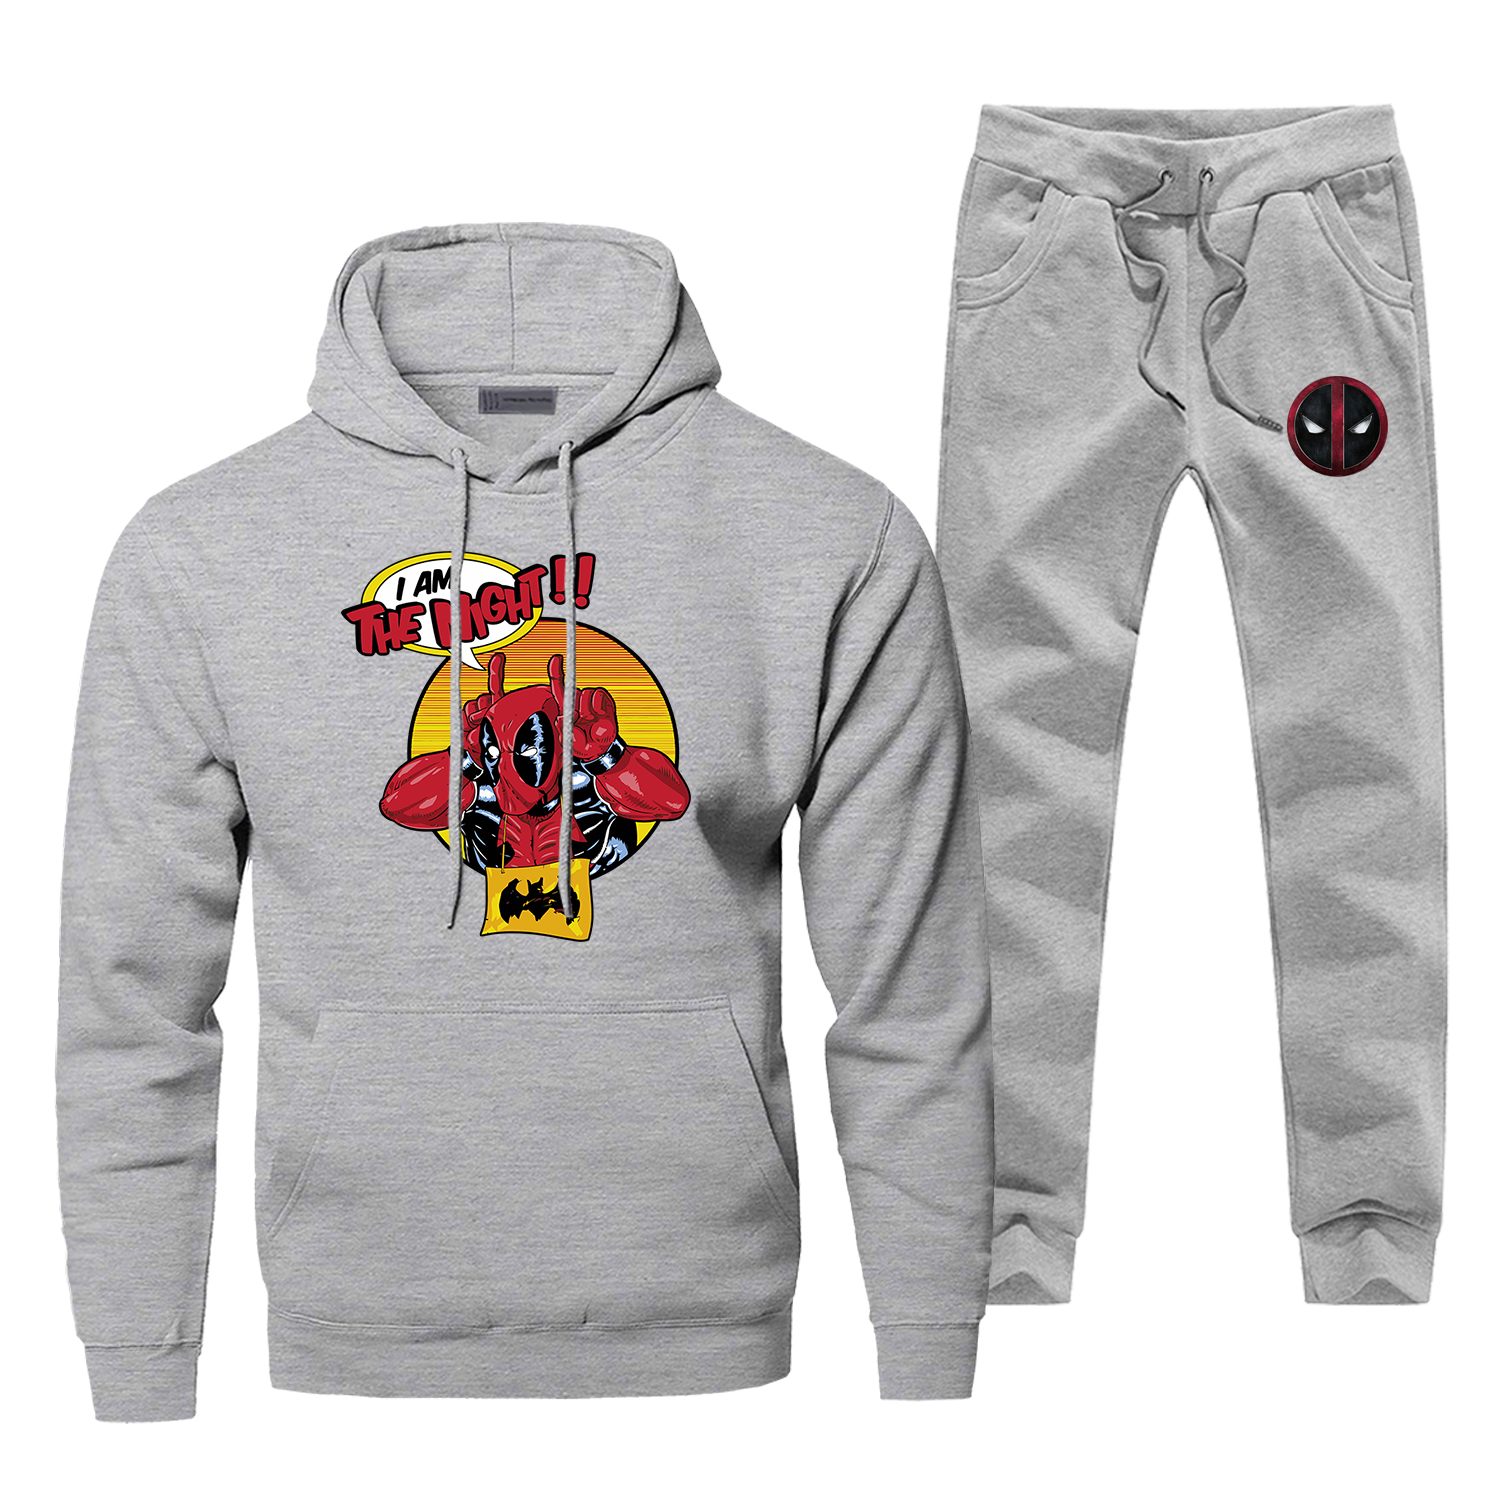 Deadpool Men Hoodies Sweatshirts Pants Sets Dead Pool Hoodie Suit Tracksuit 2 PCS Hoody Pant Sweatshirt Sweatpants Pullover Set